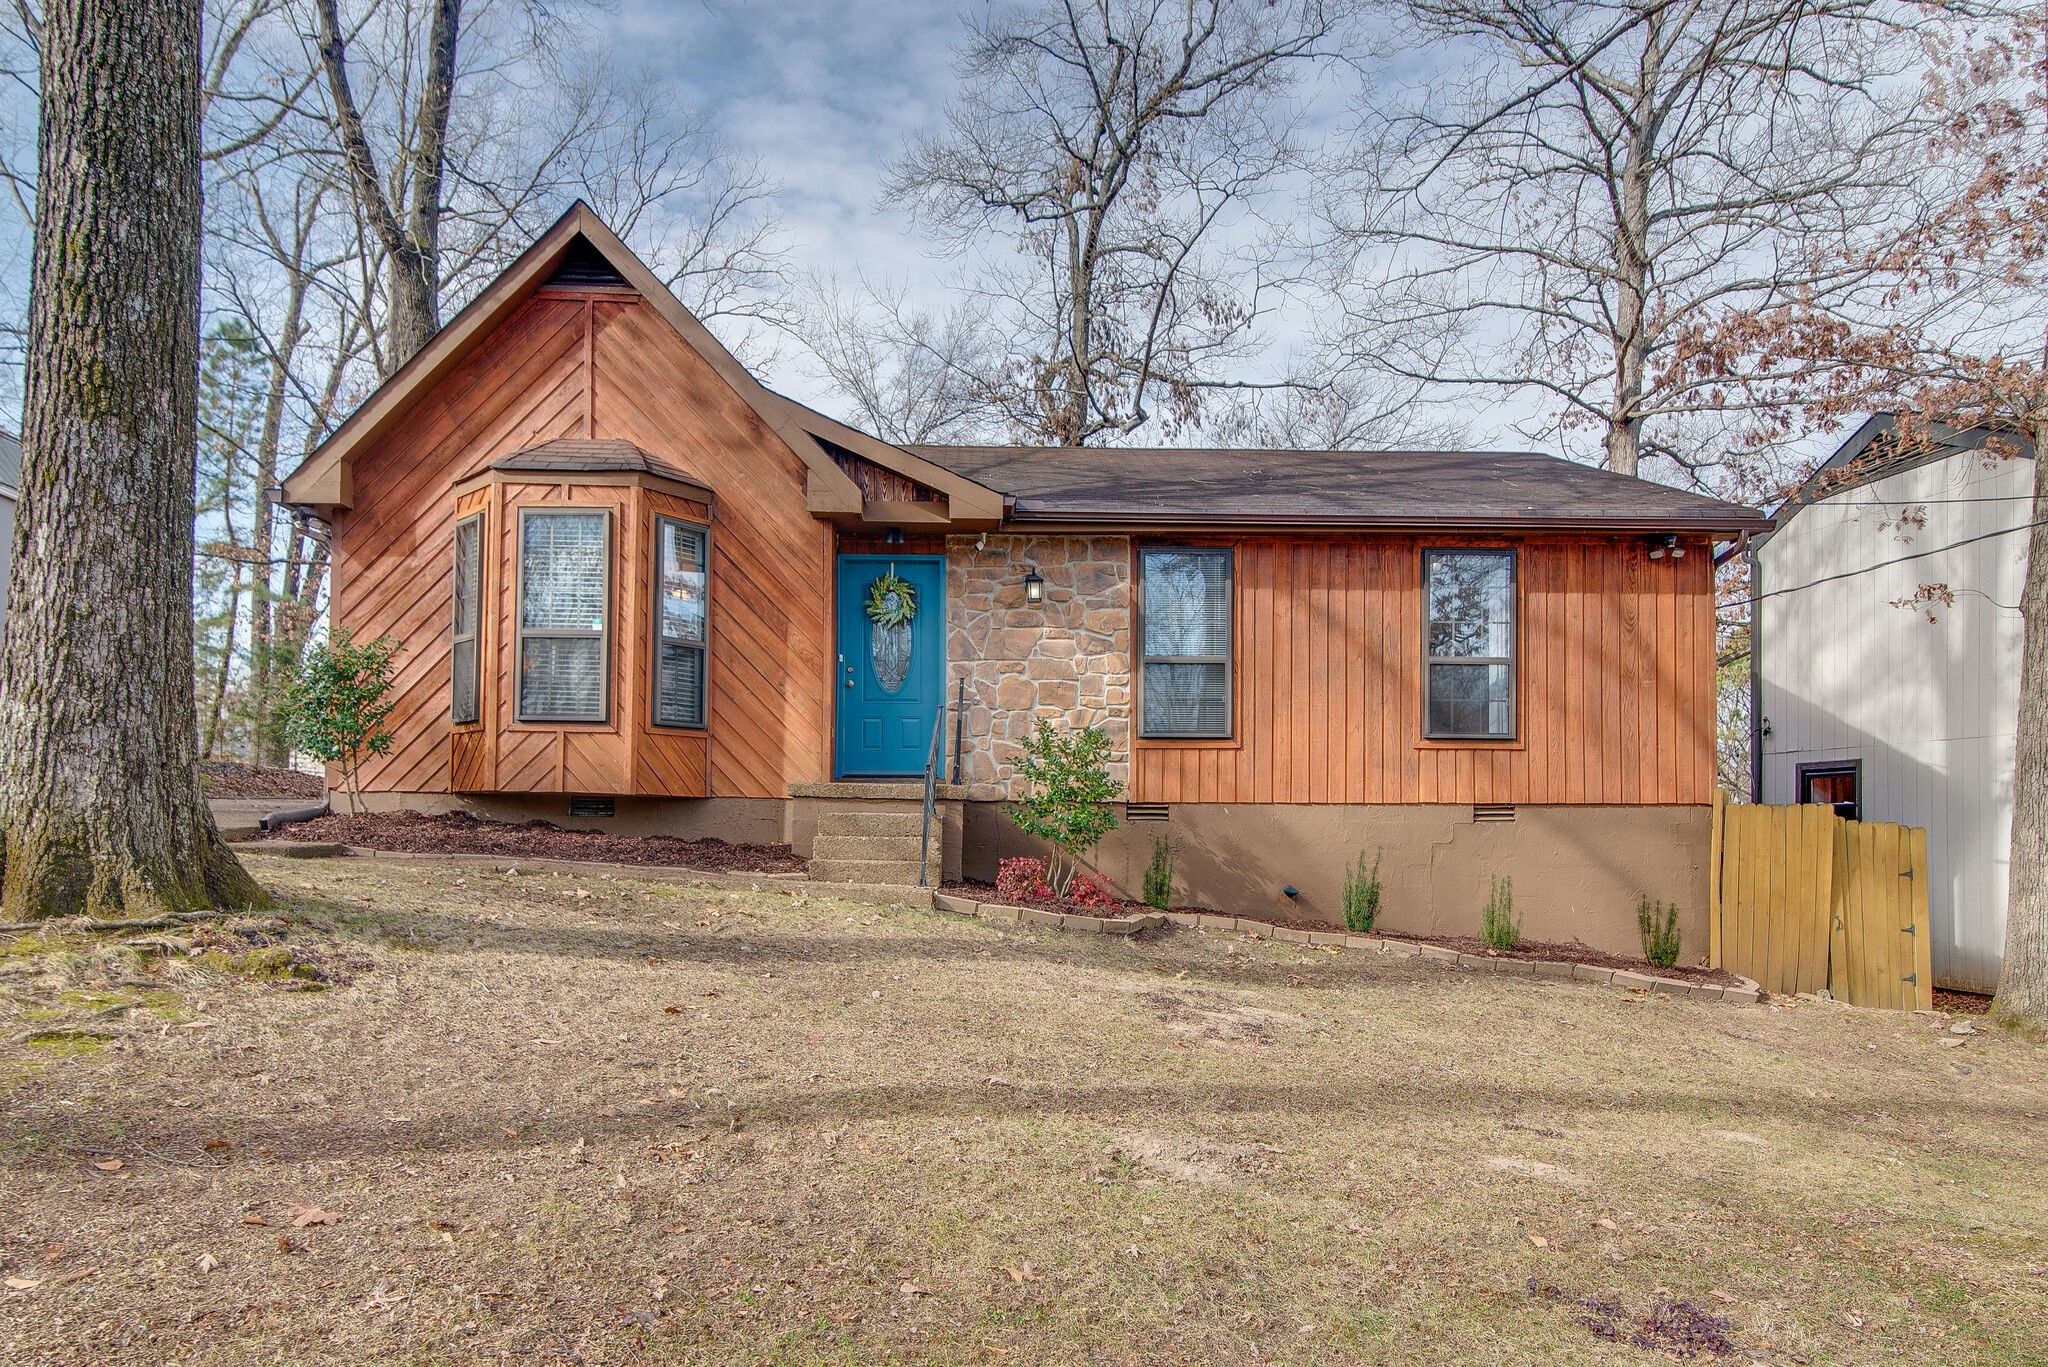 (P) This renovated gem in Donelson features 3 beds, 2 baths and a spacious yard.  Granite countertops, stainless appliances, hardwood floors, and updated fixtures.  Privacy fence and storage shed.  Extremely convenient access to the interstate, airport, and all that Hip Donelson has to offer!